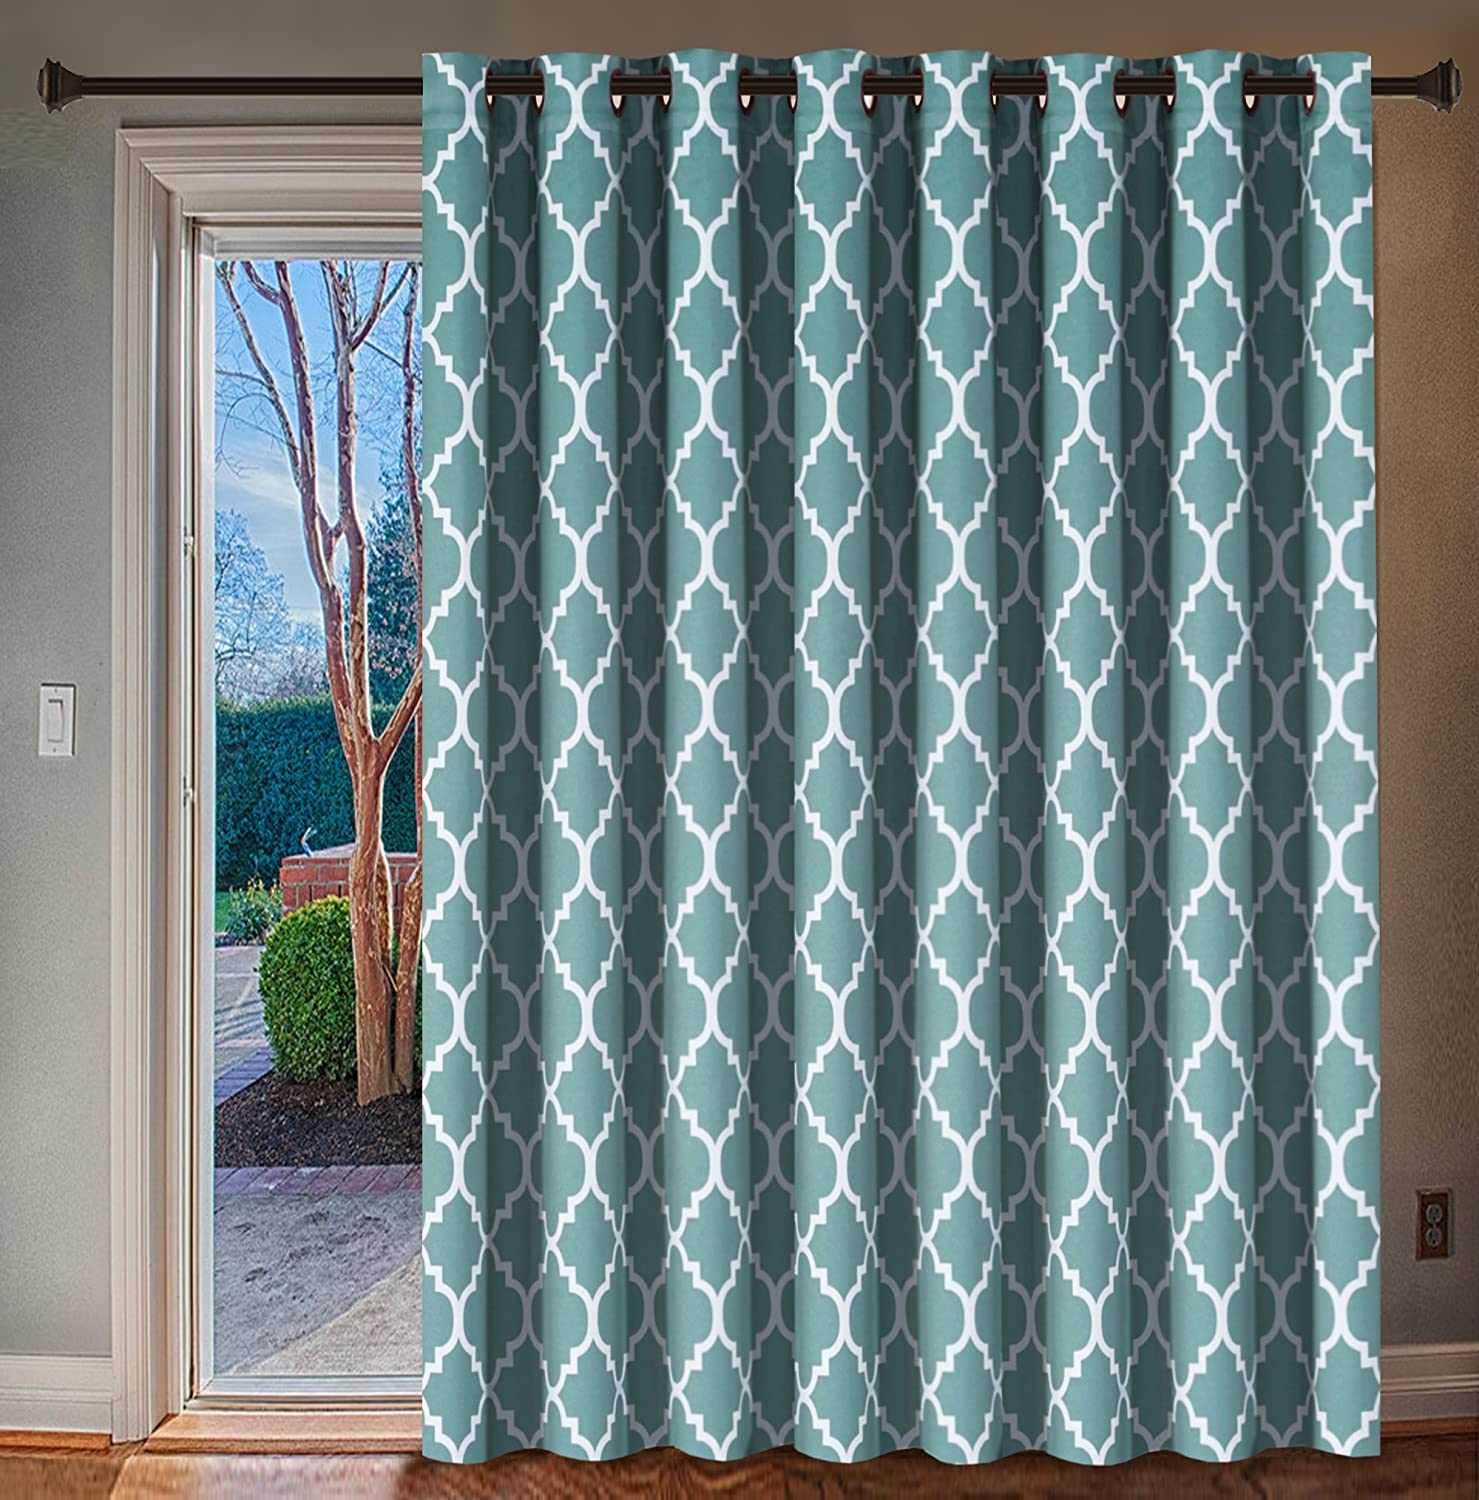 H.VERSAILTEX Energy Efficient Printed Blackout Curtain, Extra Wide Thermal Insulated Patio Panel - Grommet Large Size 100  W by 96  L Window Drapes - Smoke bluee, 1 Panel